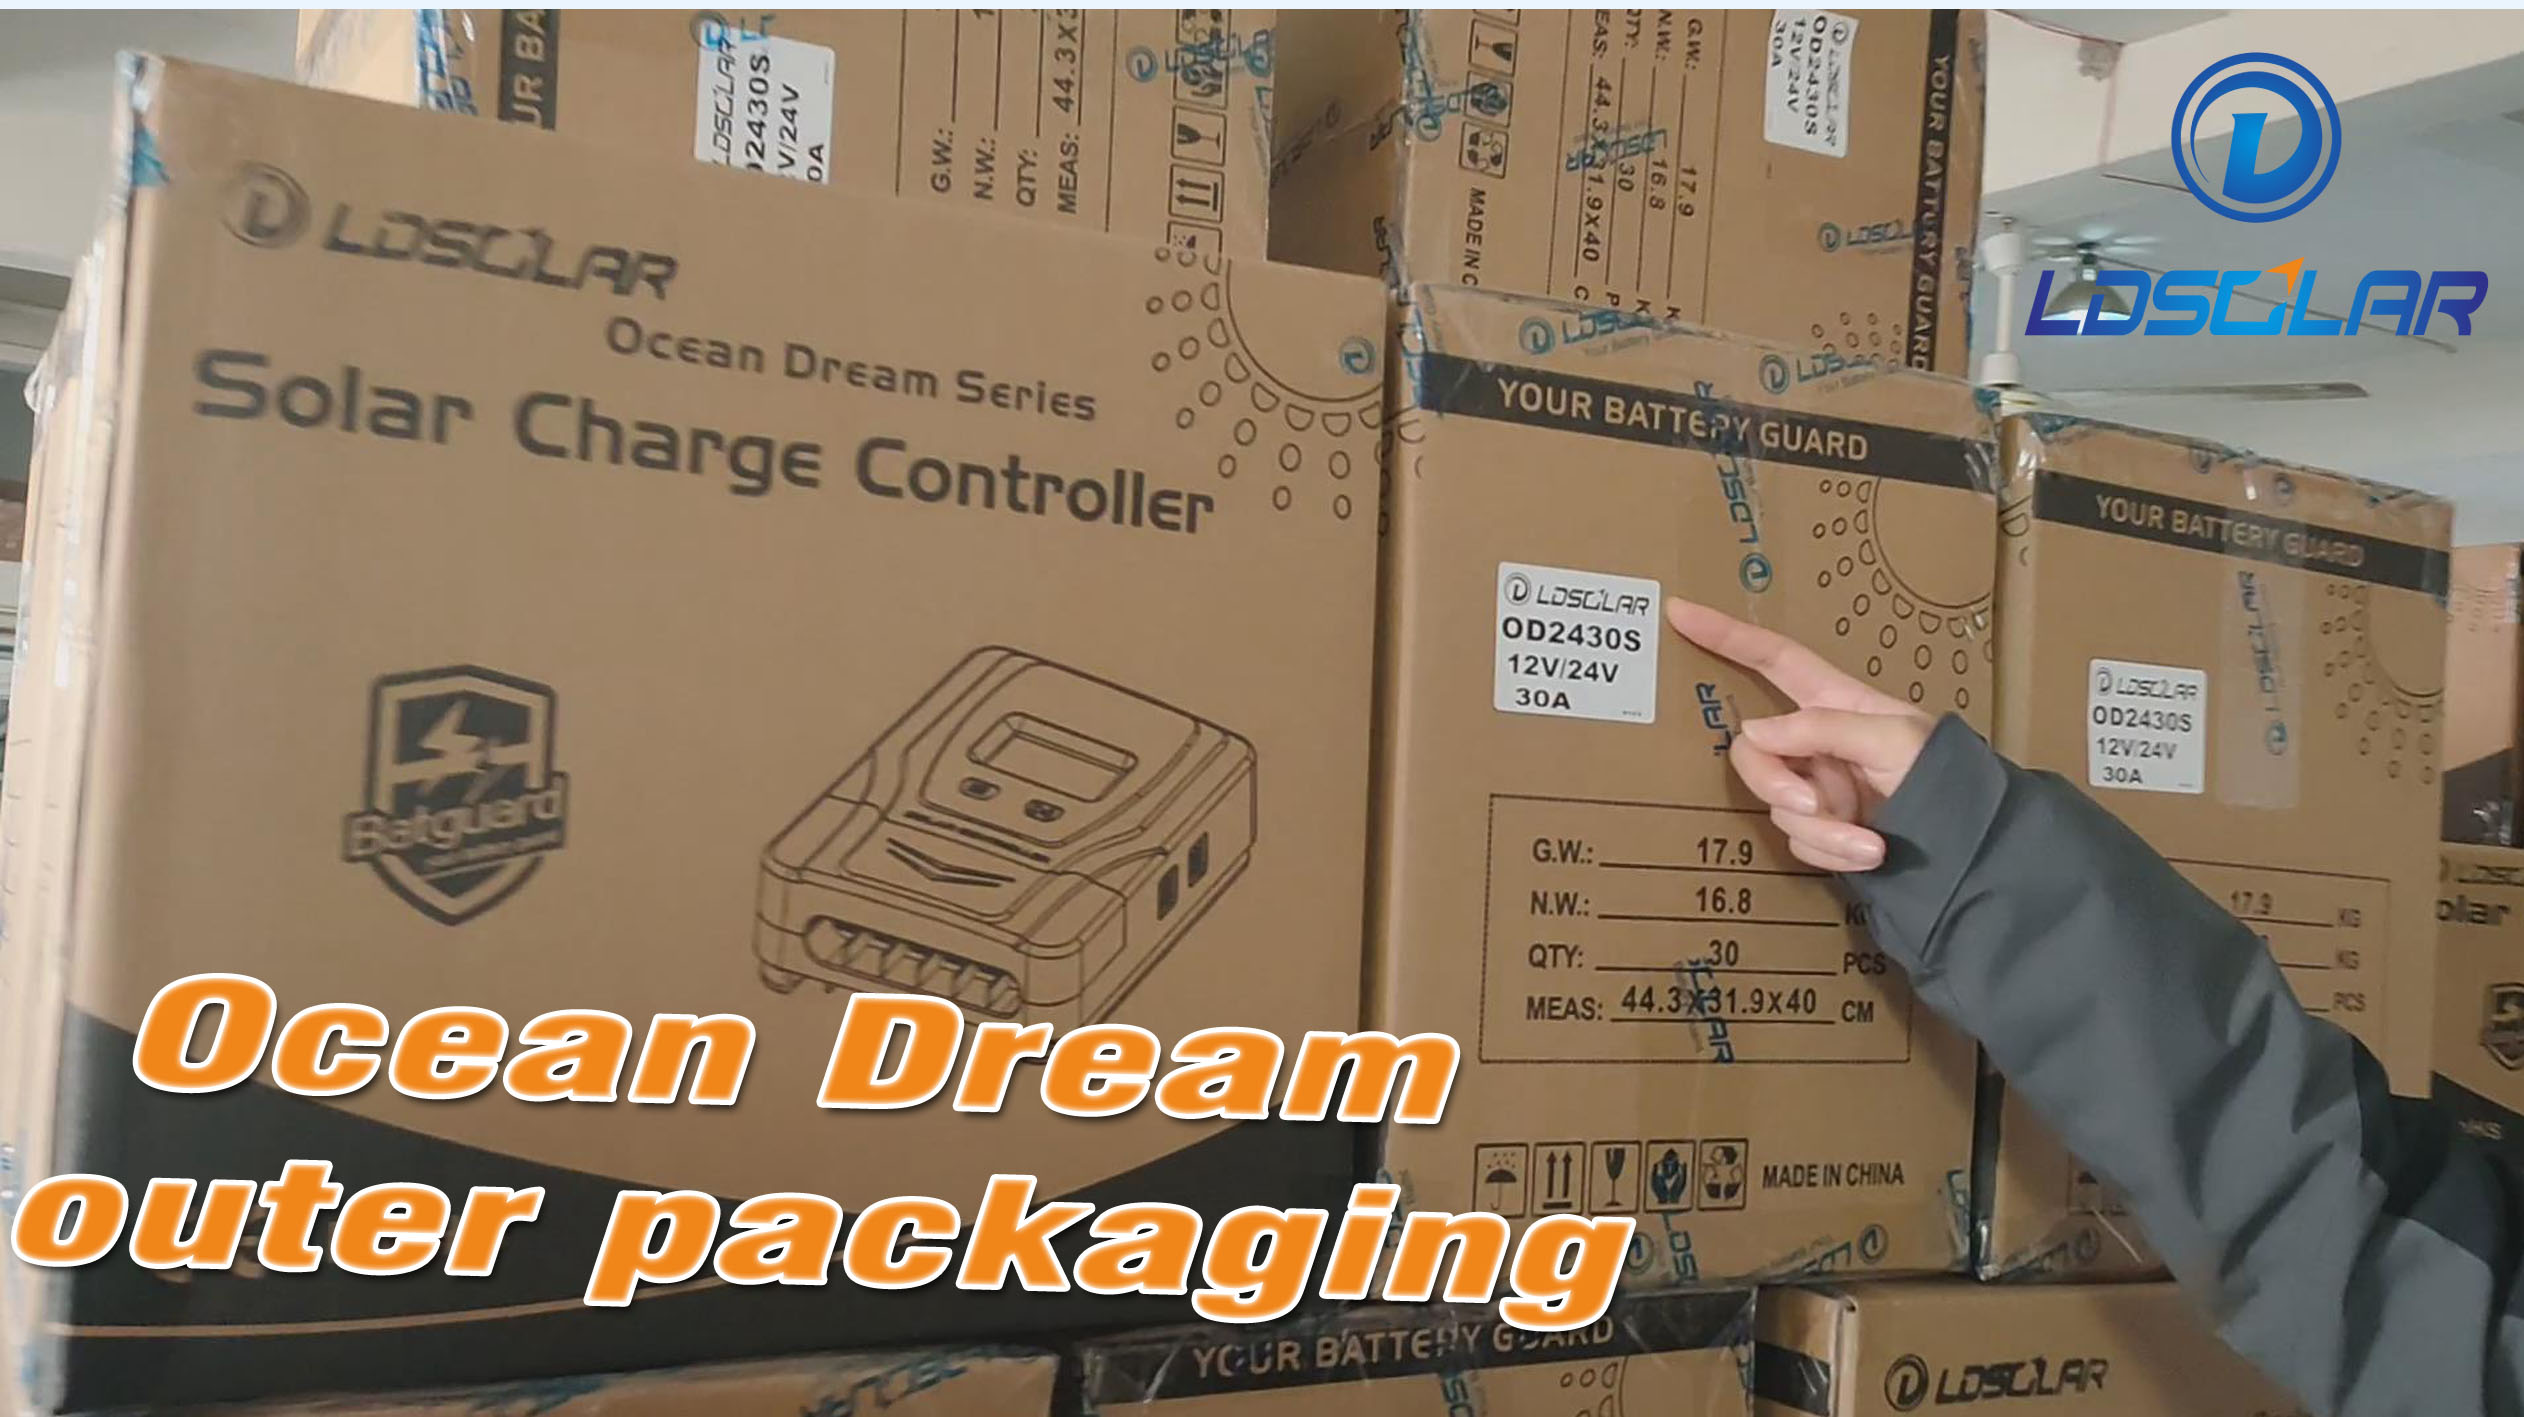 PWM solar controller Ocean Dream outer packaging introduction